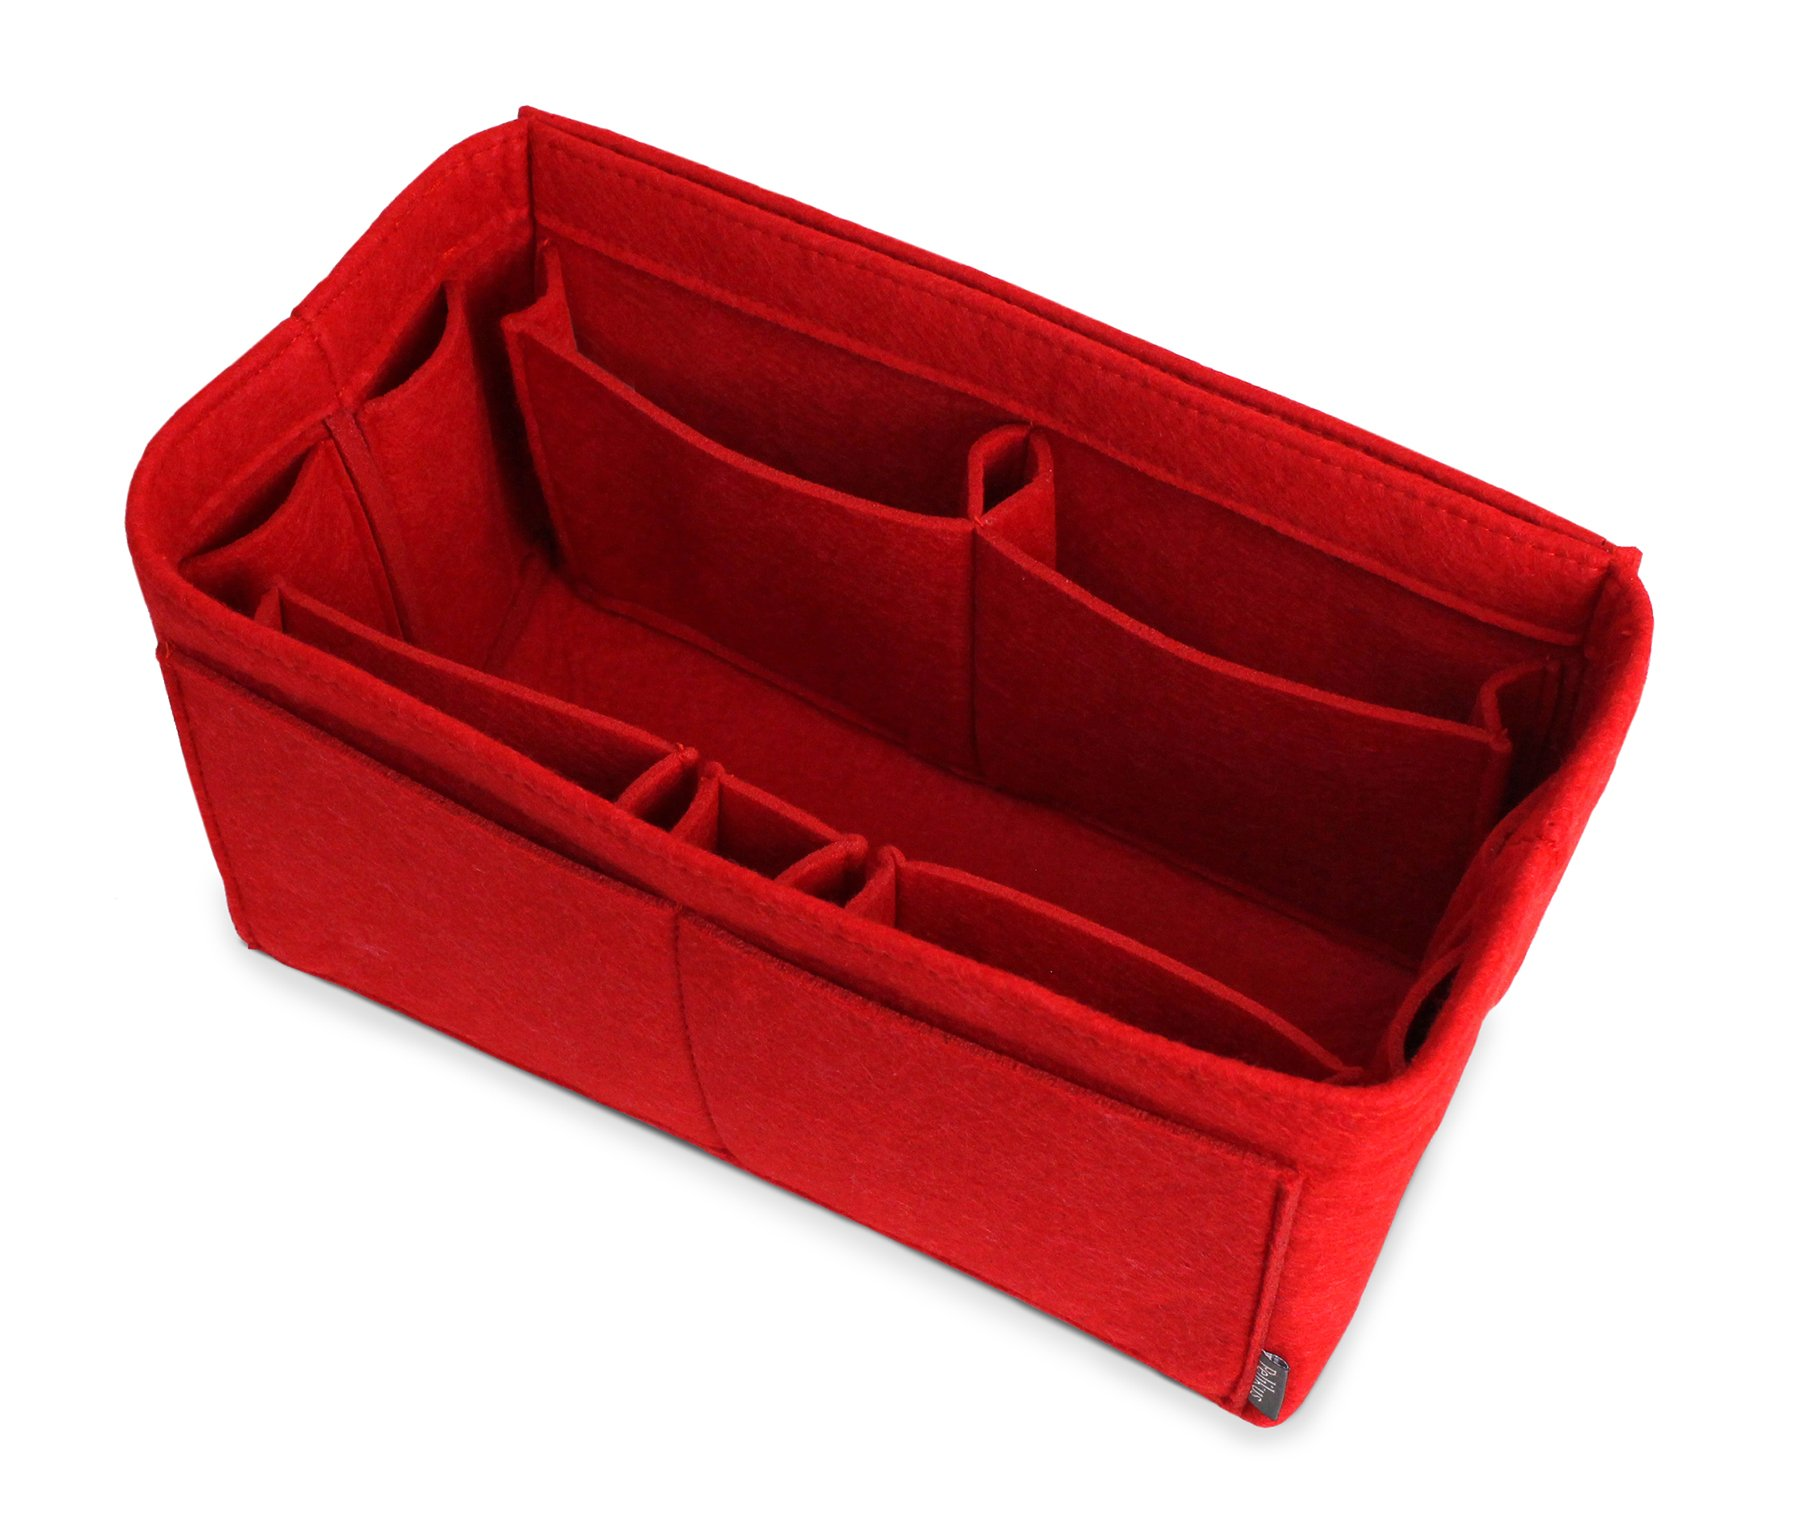 Pelikus Felt Purse & Tote Organizer Insert/Multi-Pocket Handbag Shaper (Large, Red) by Pelikus (Image #1)